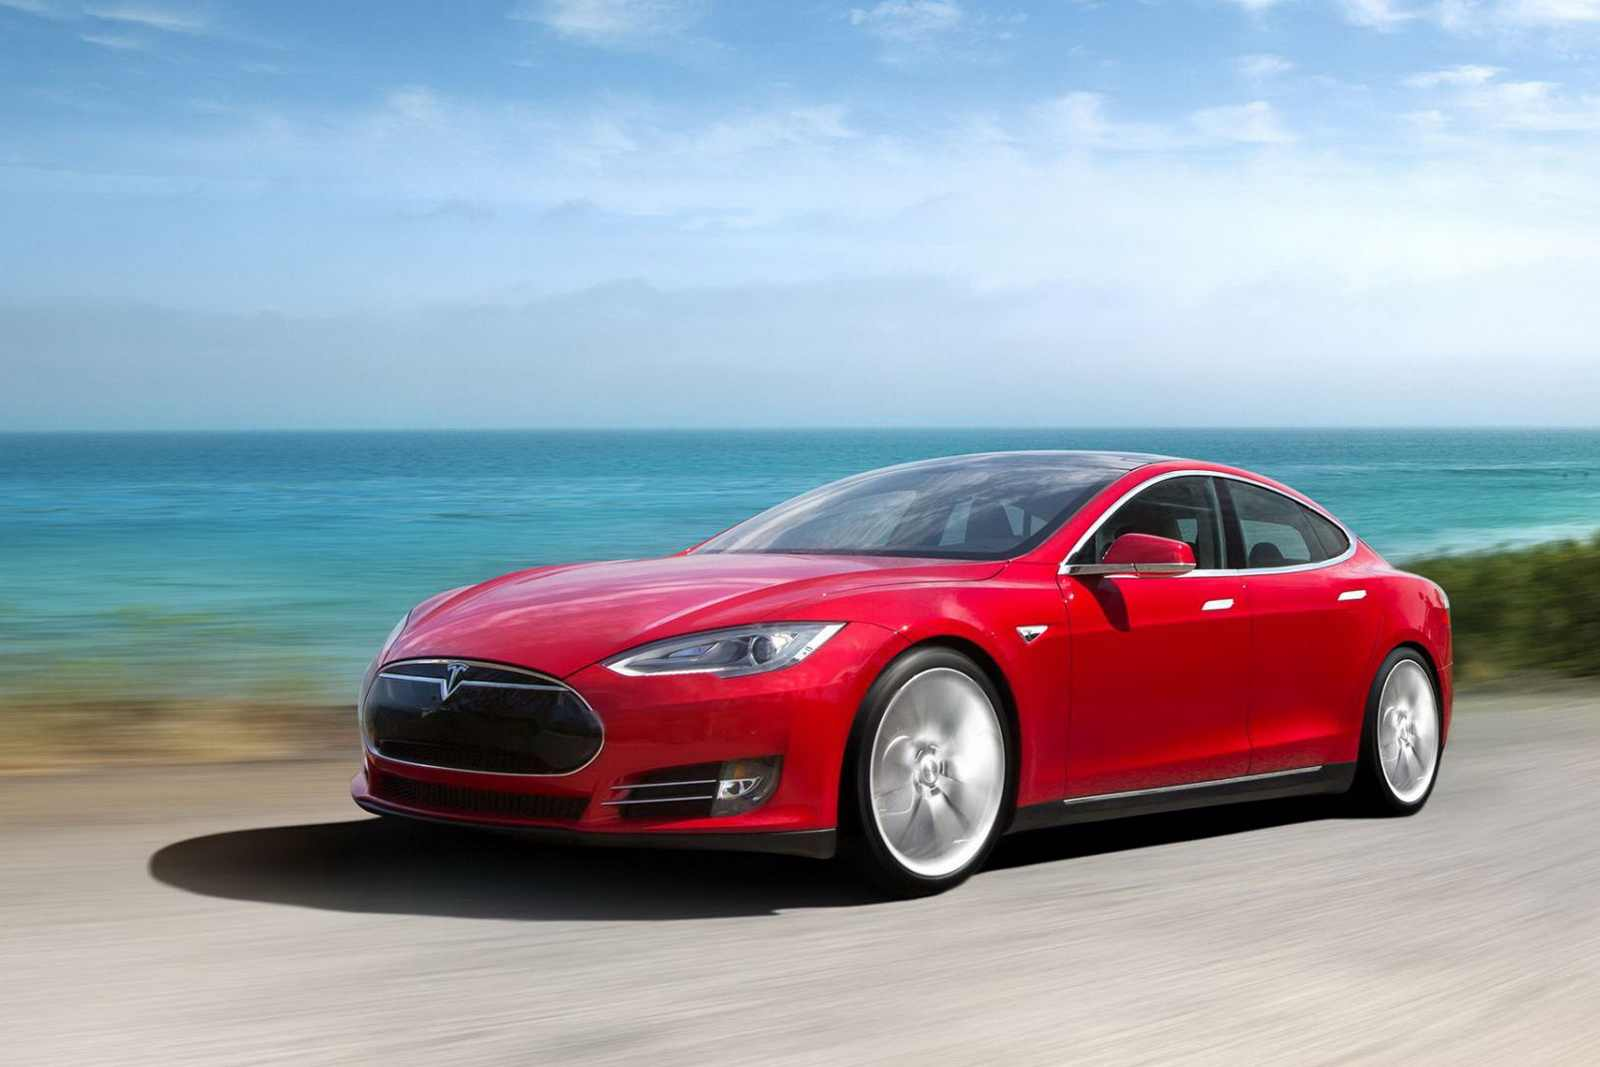 The 2015 Tesla Model S5 will be the first generation with complete battery swap as an option.